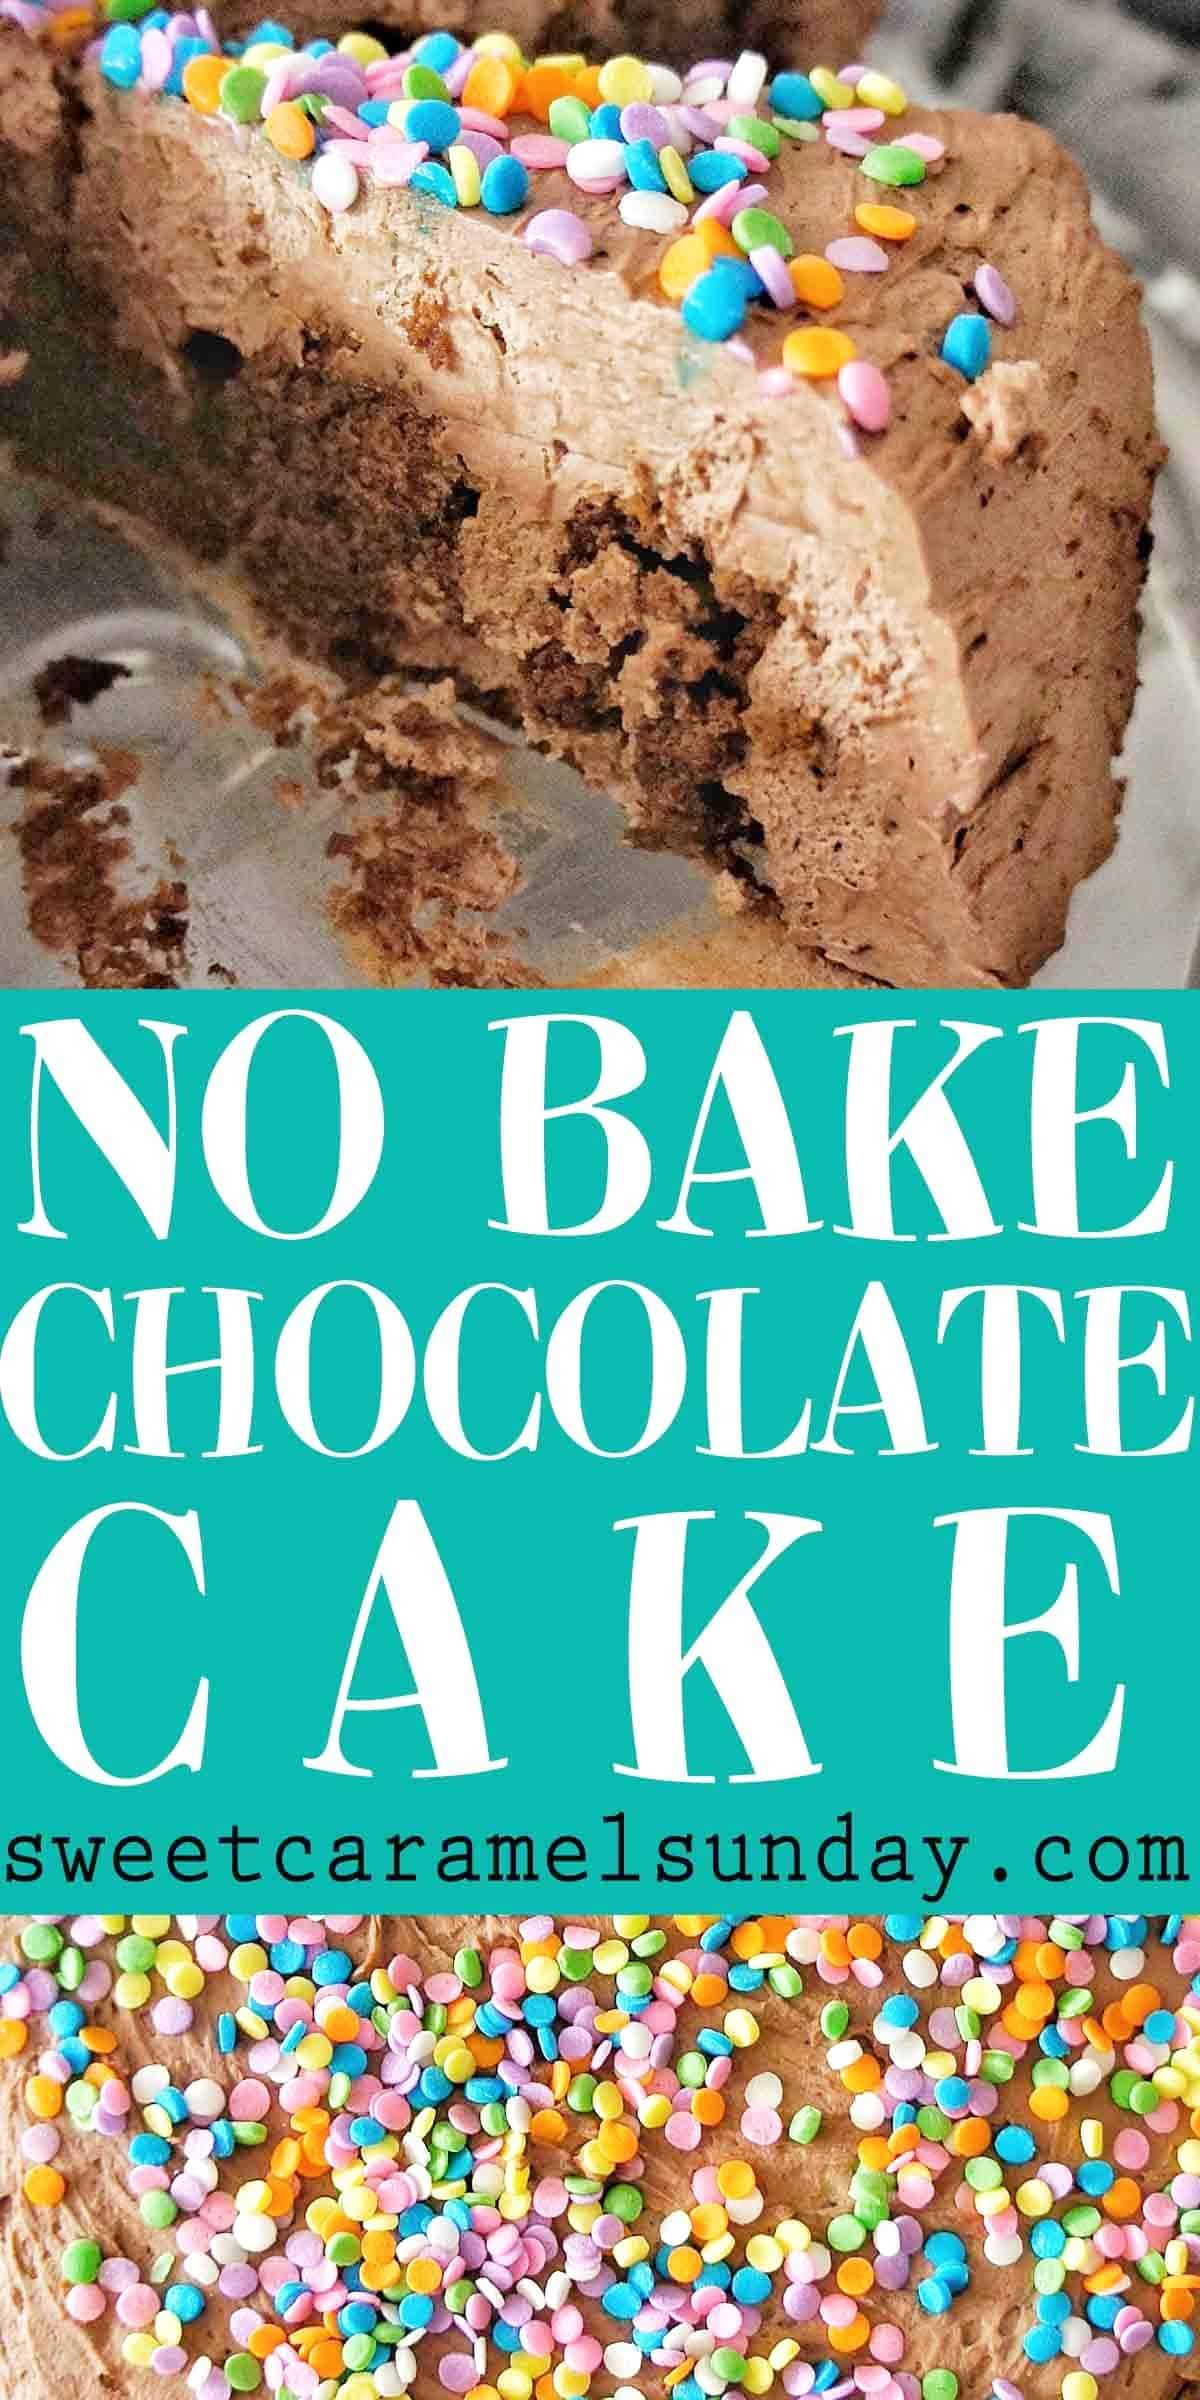 No Bake Chocolate Cake with text overlay